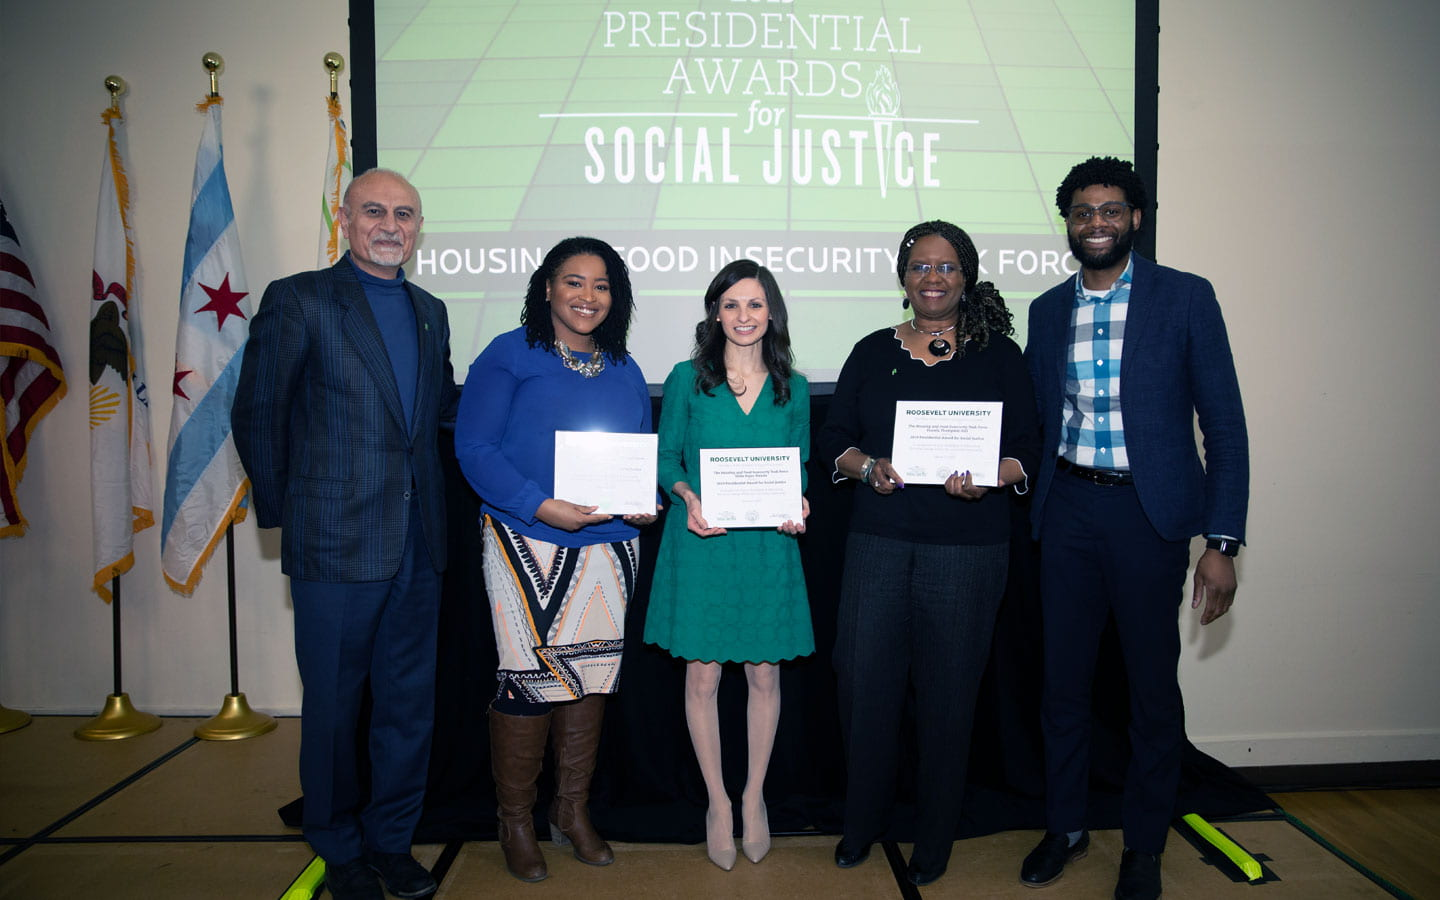 President Ali with award-winning staff members Charity Seaborn, Hilda Rojas-Duarte and Pamela Thompson-Hill.